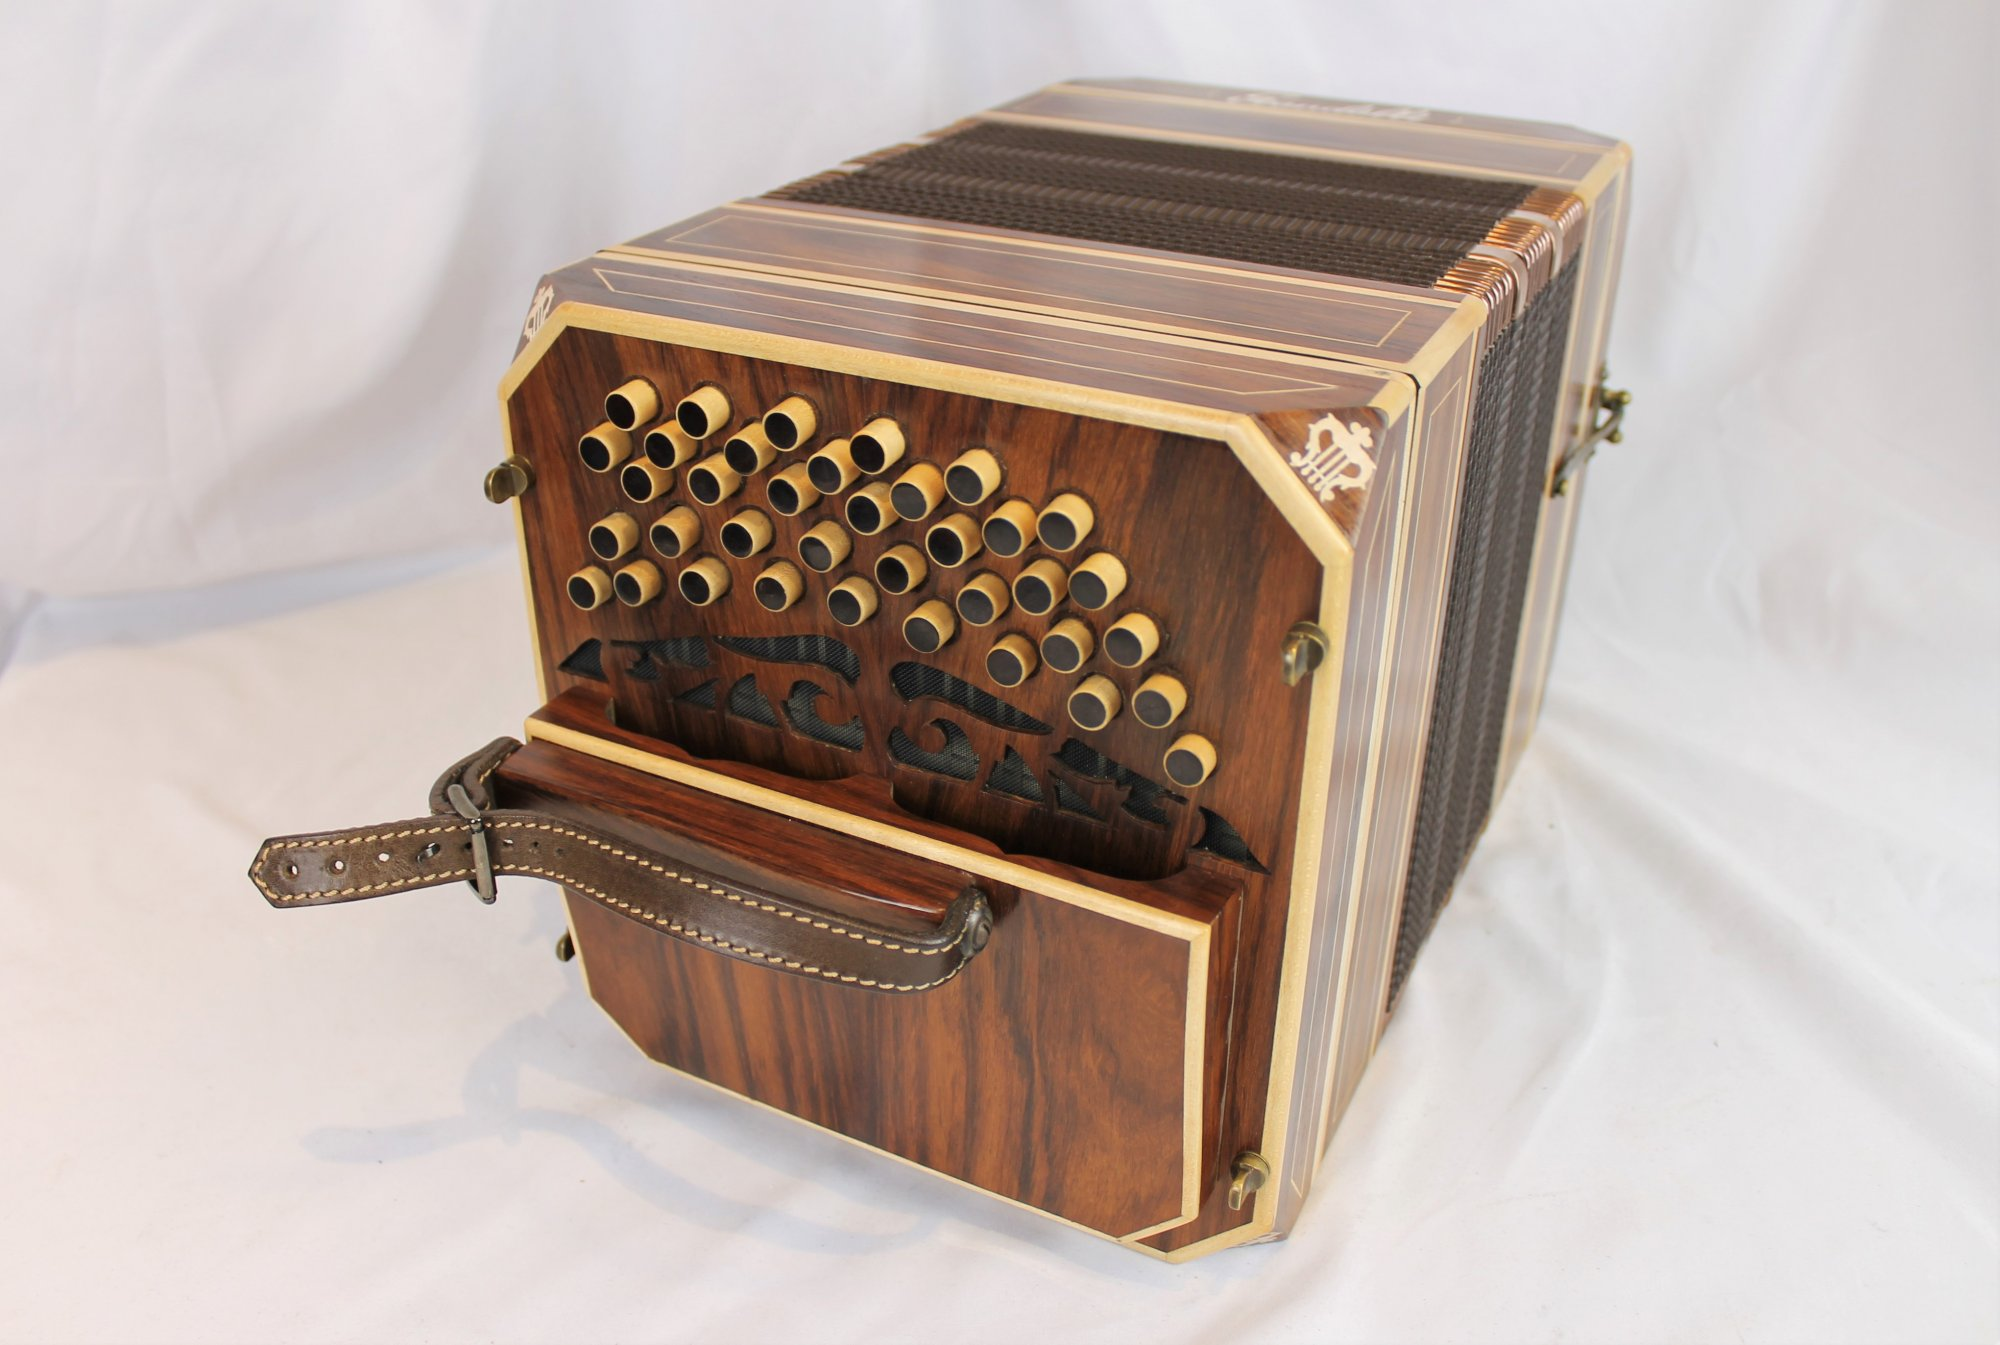 NEW Mahogany Scandalli Argentinean 152 Note Bandoneon LM 39 37